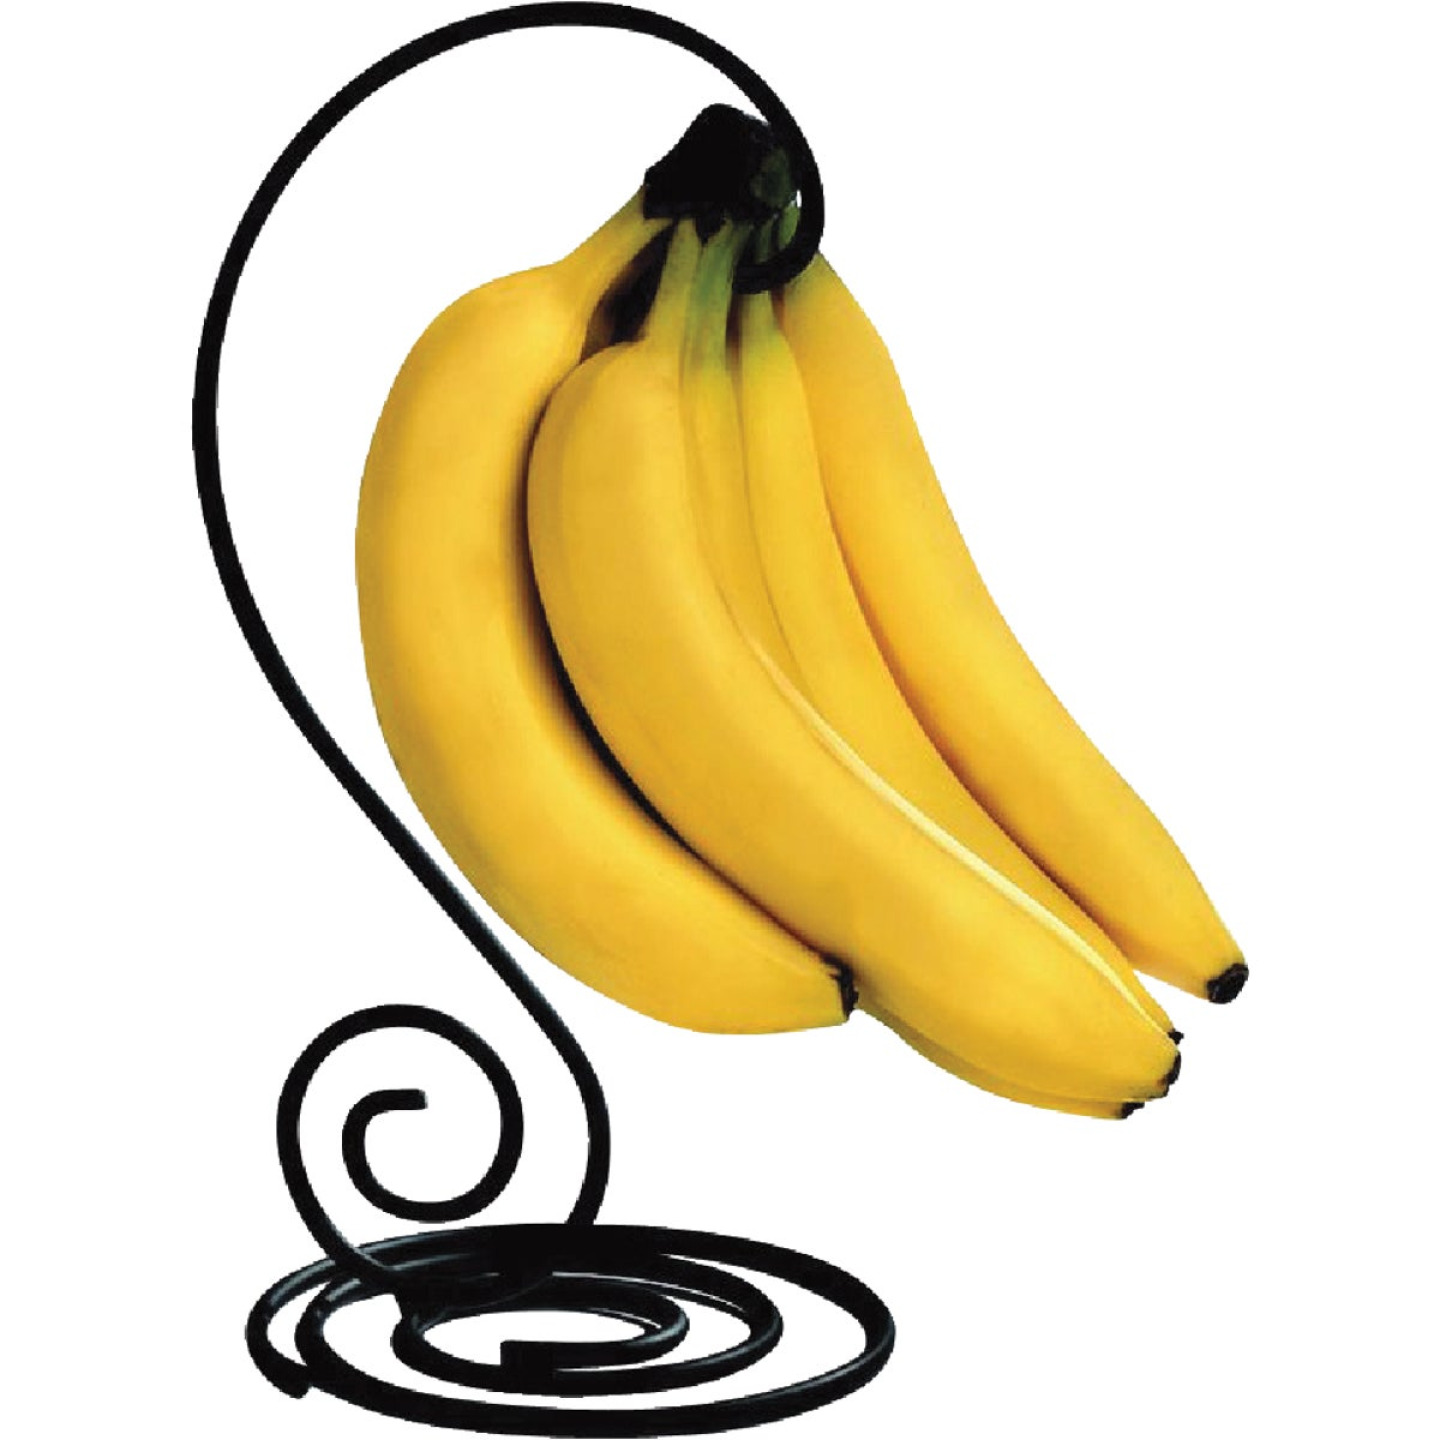 Spectrum Scroll Black Banana Tree Image 1